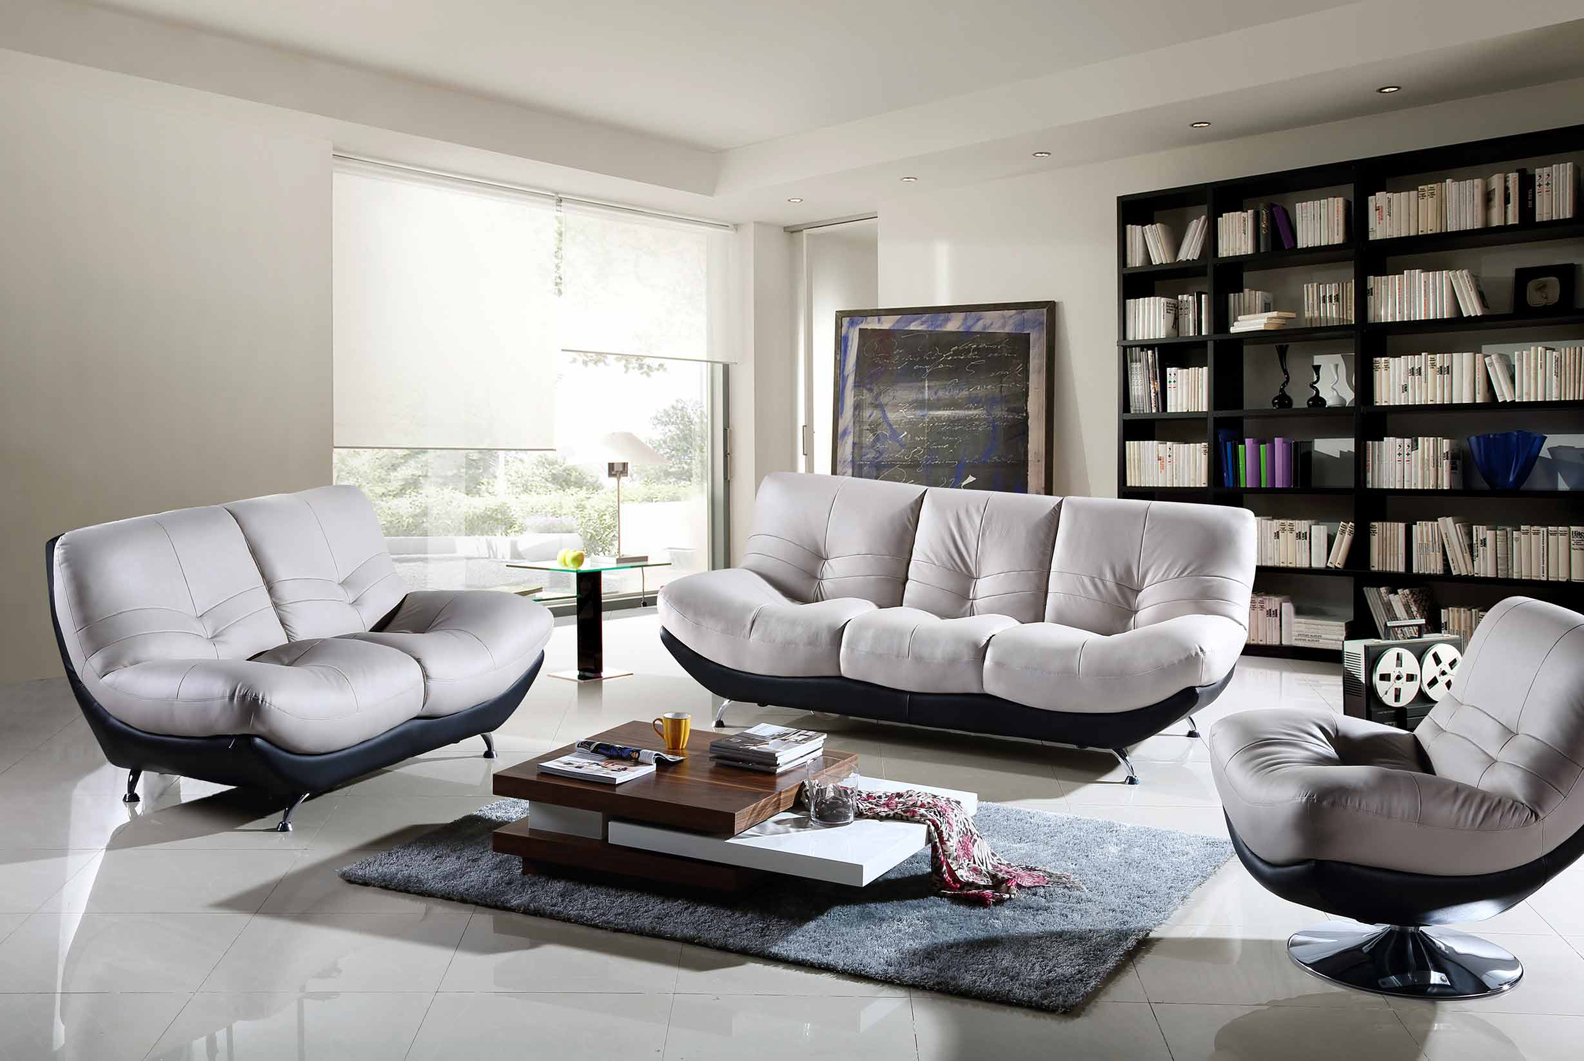 Modern Contemporary Living Room Furniture Tuckr Box Decors pertaining to Cheap Modern Living Room Sets